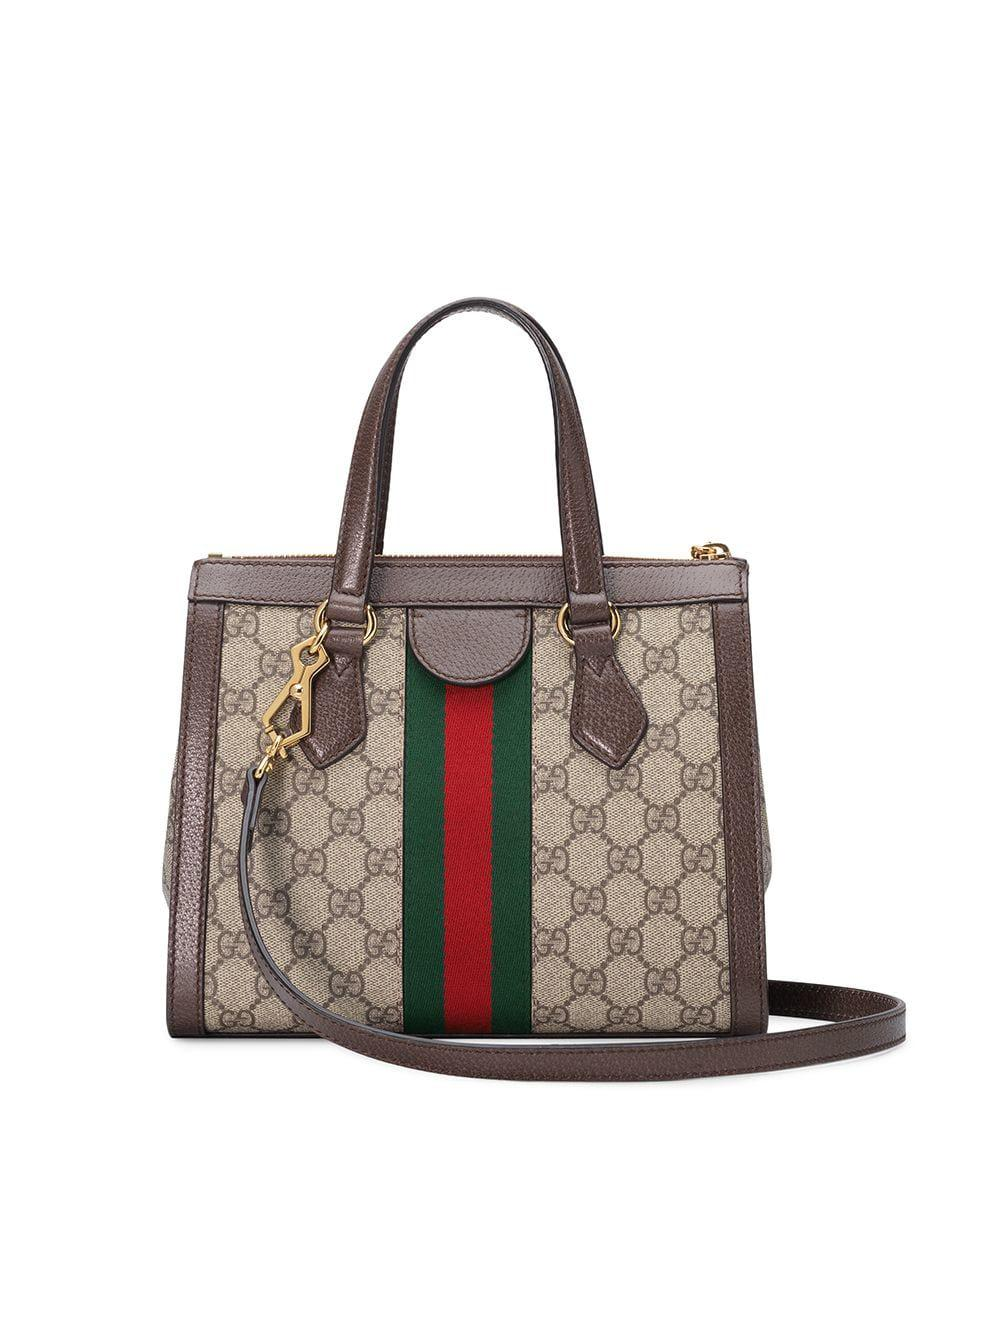 0d6199779c2 Lyst - Gucci Ophidia Small GG Tote Bag in Brown